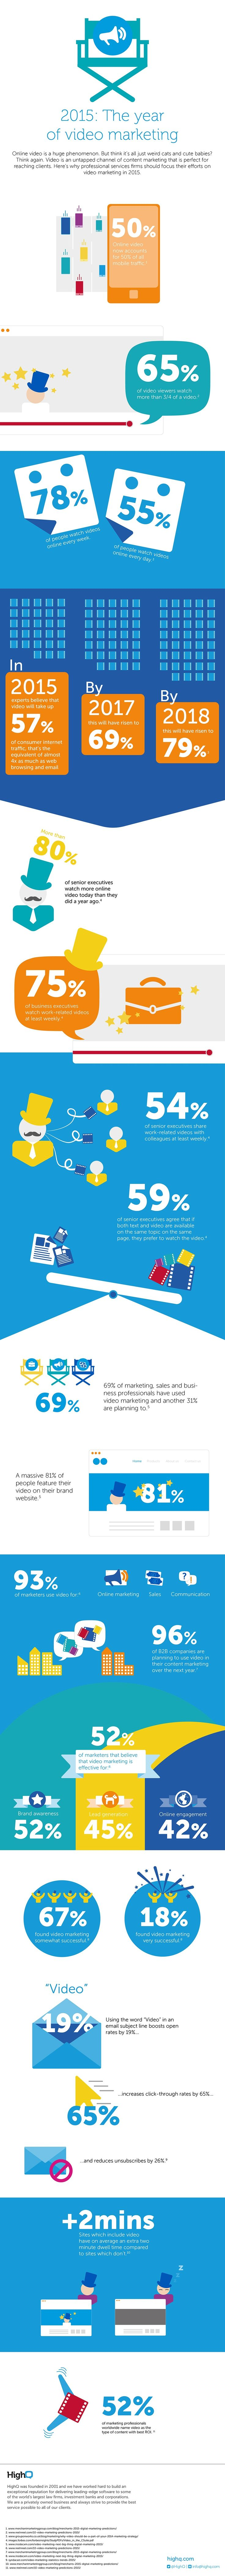 2015: The Year of Video Marketing [Infographic], via @HubSpot